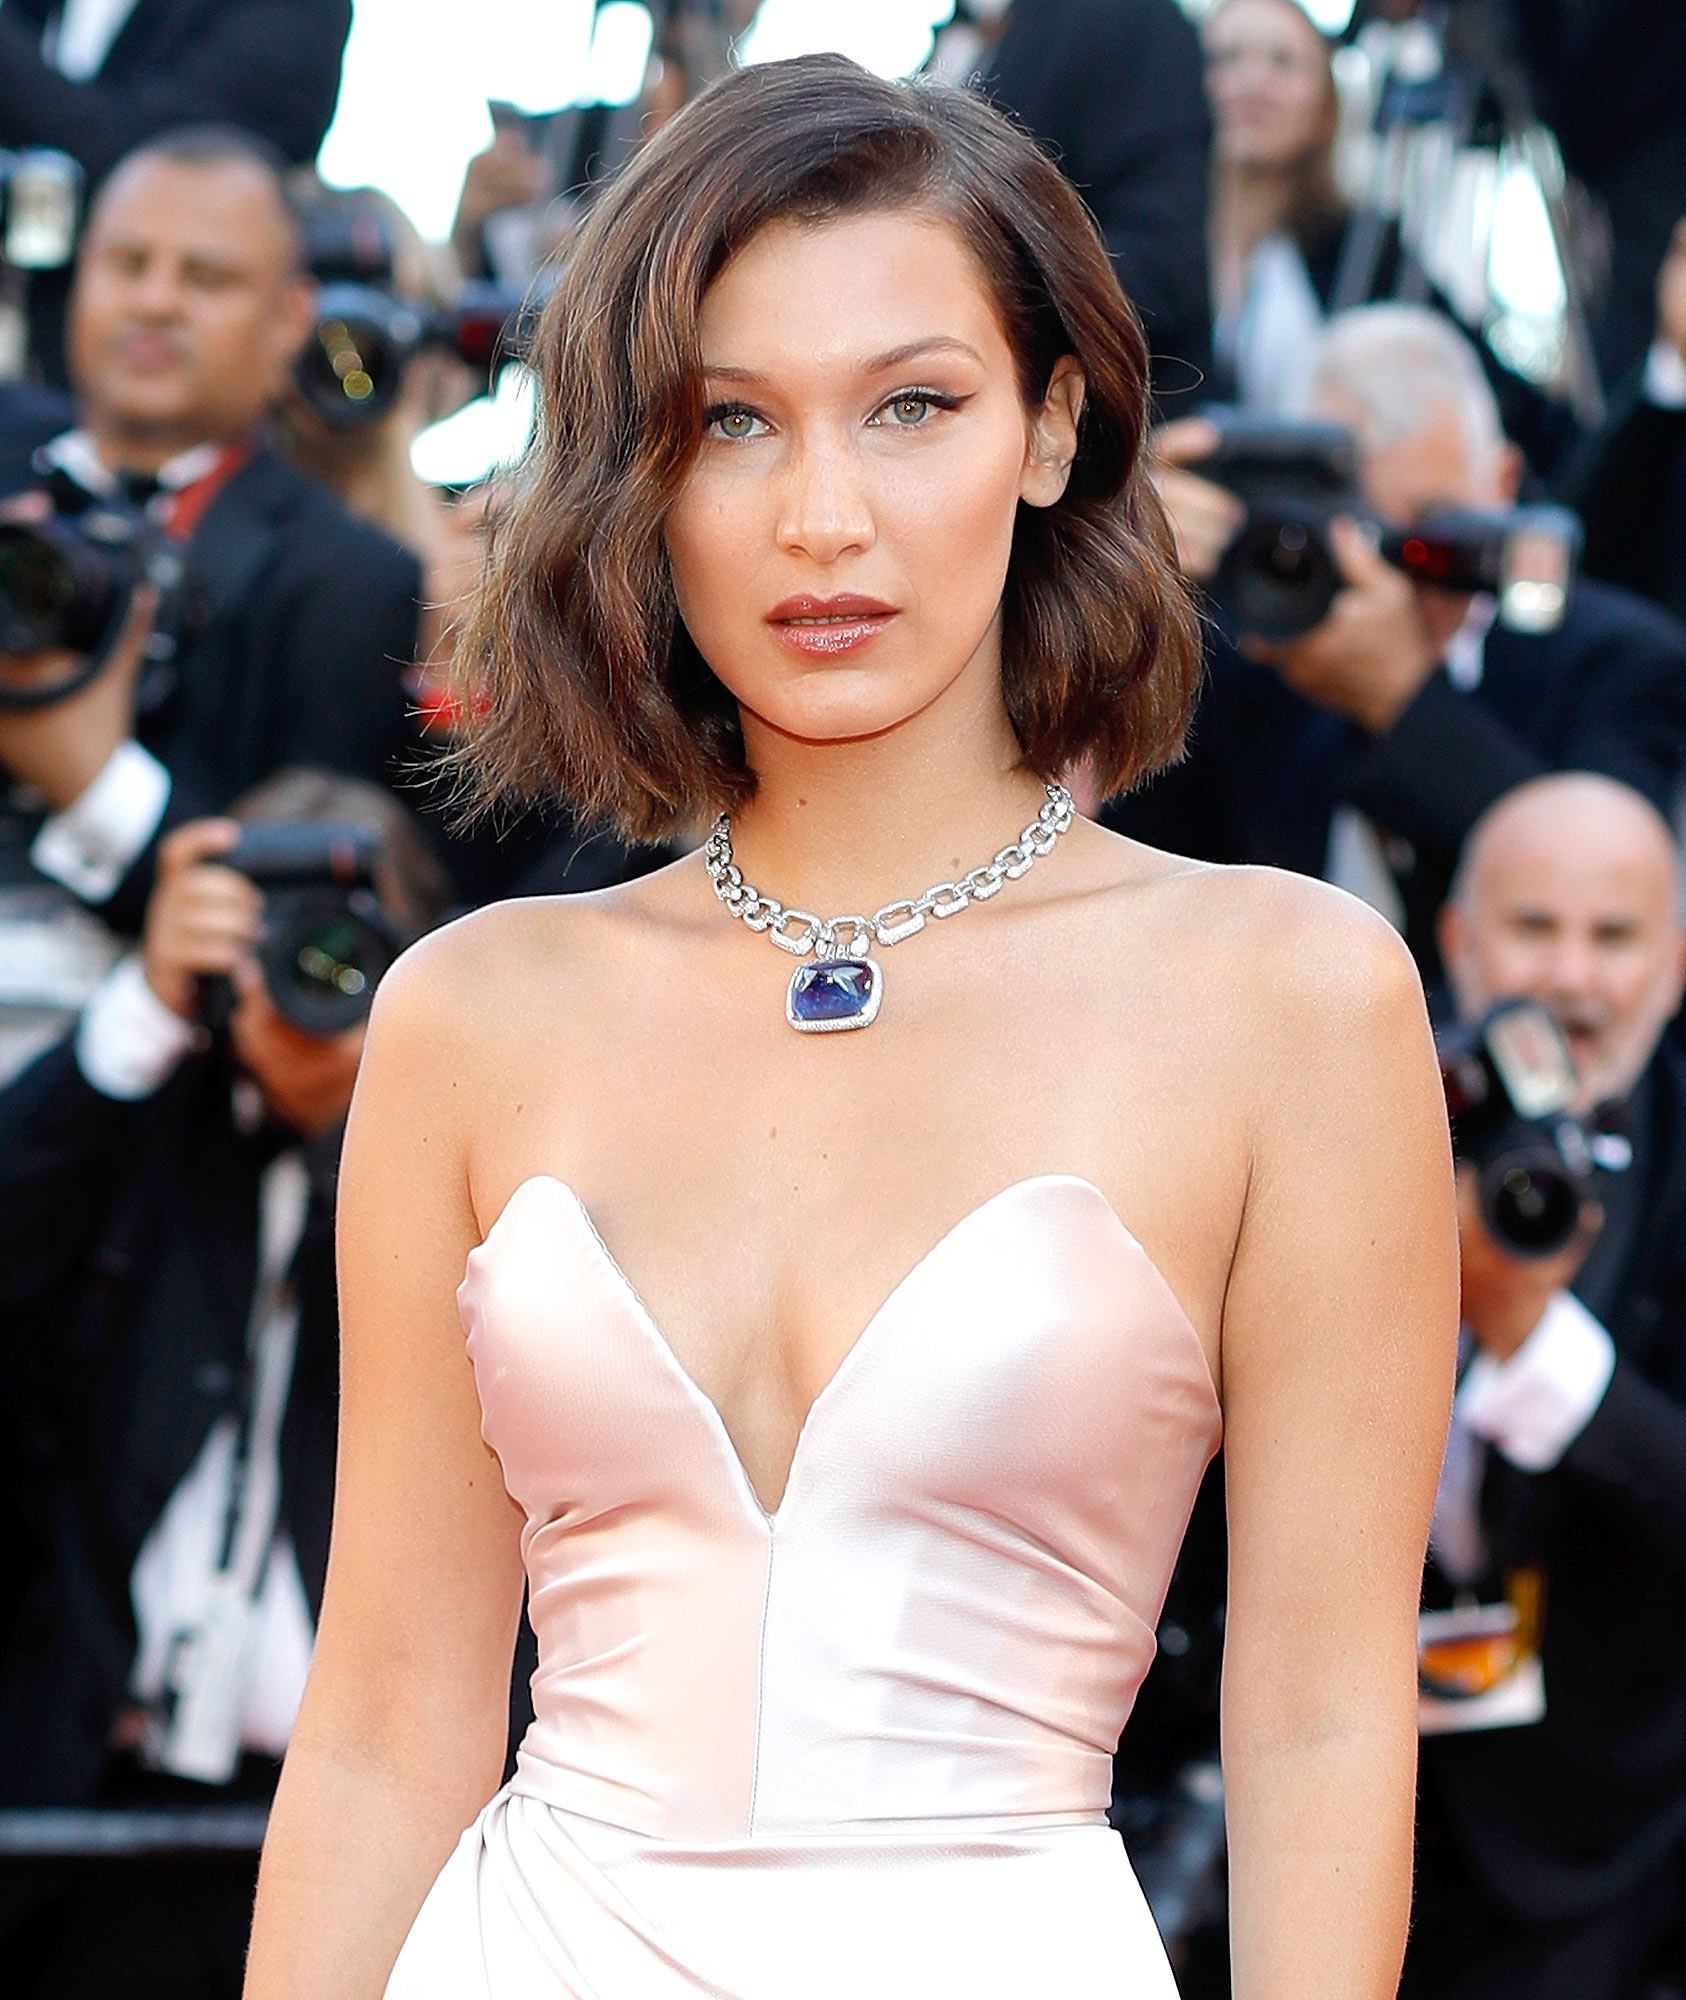 Bella-Hadid-bob-hairstyles-2017-Cannes